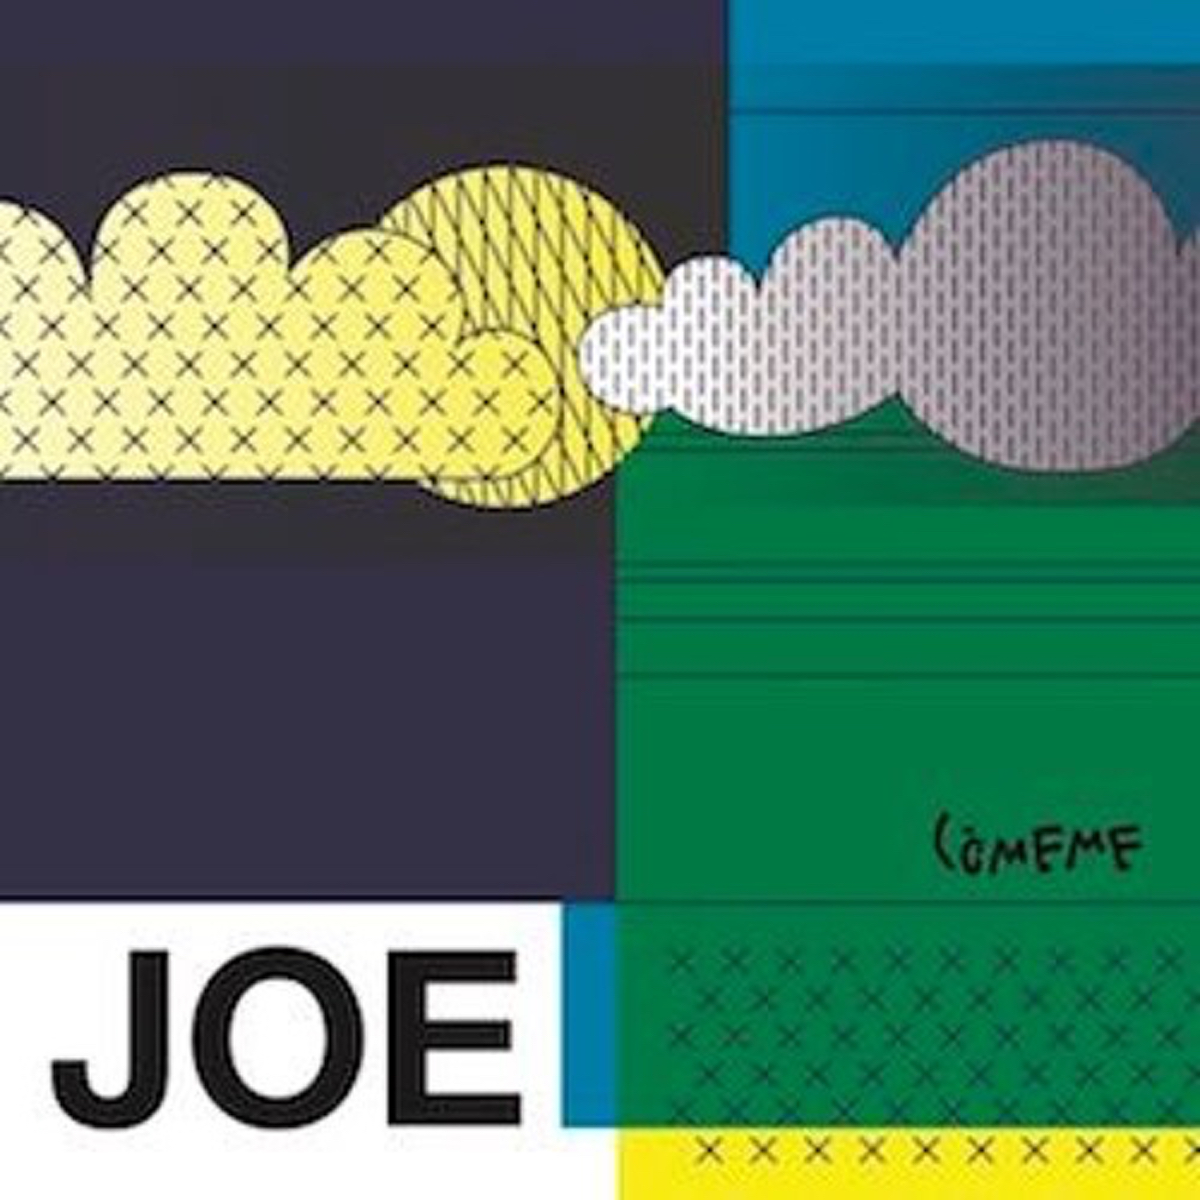 Joe debuts on Cómeme with new EP, Get Centred